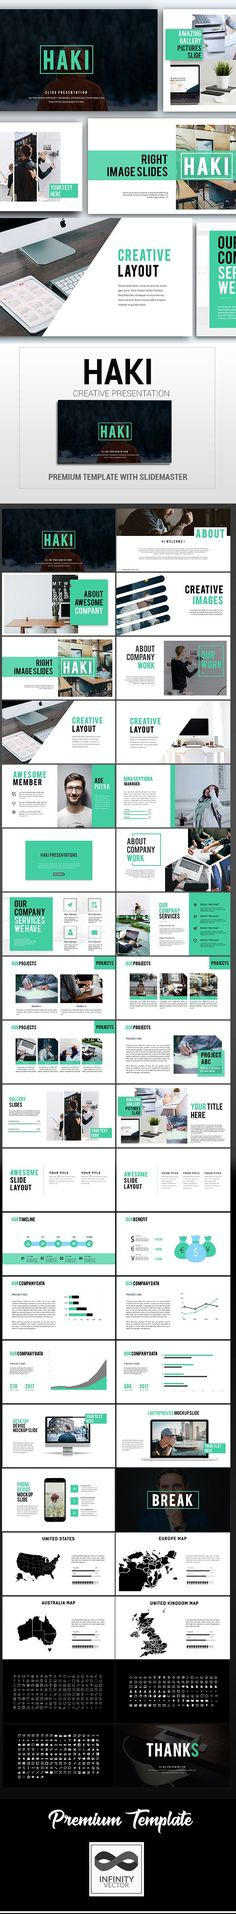 Haki - Creative Powerpoint Template